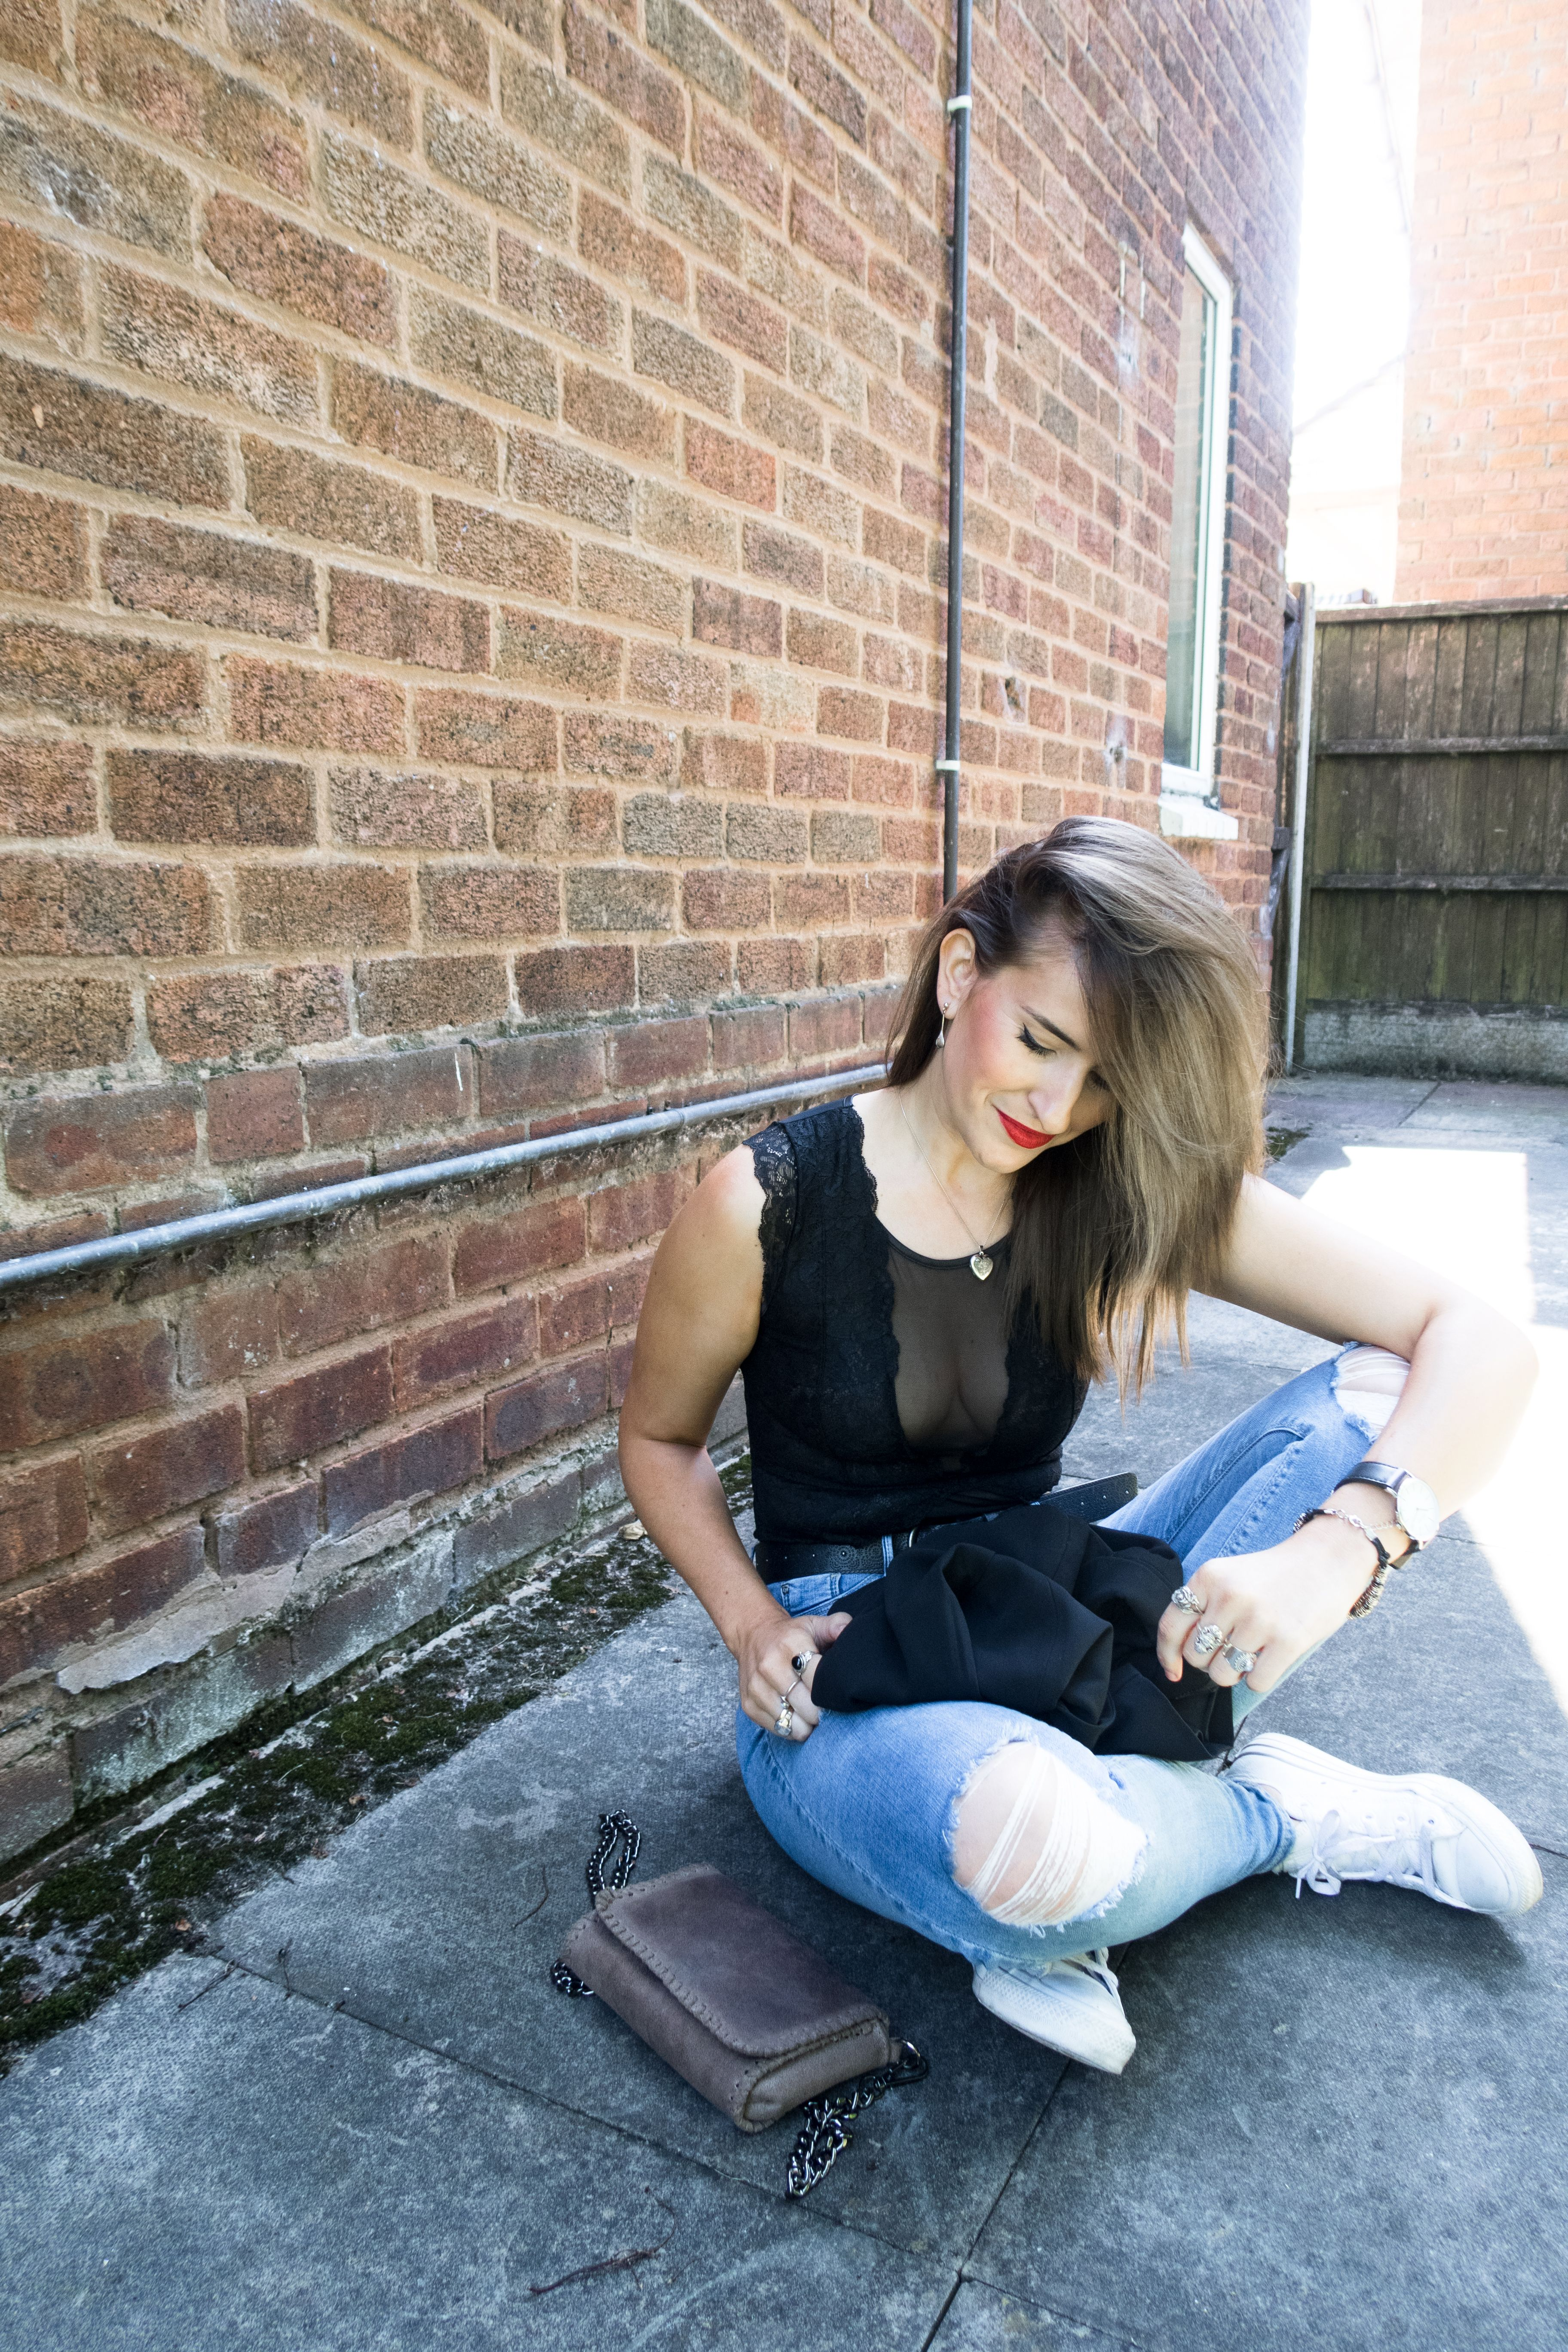 a00ebad6c9d0 How to wear bodysuit: Primark black lace bodysuit outfit Cityscape Bliss //  style and fashion